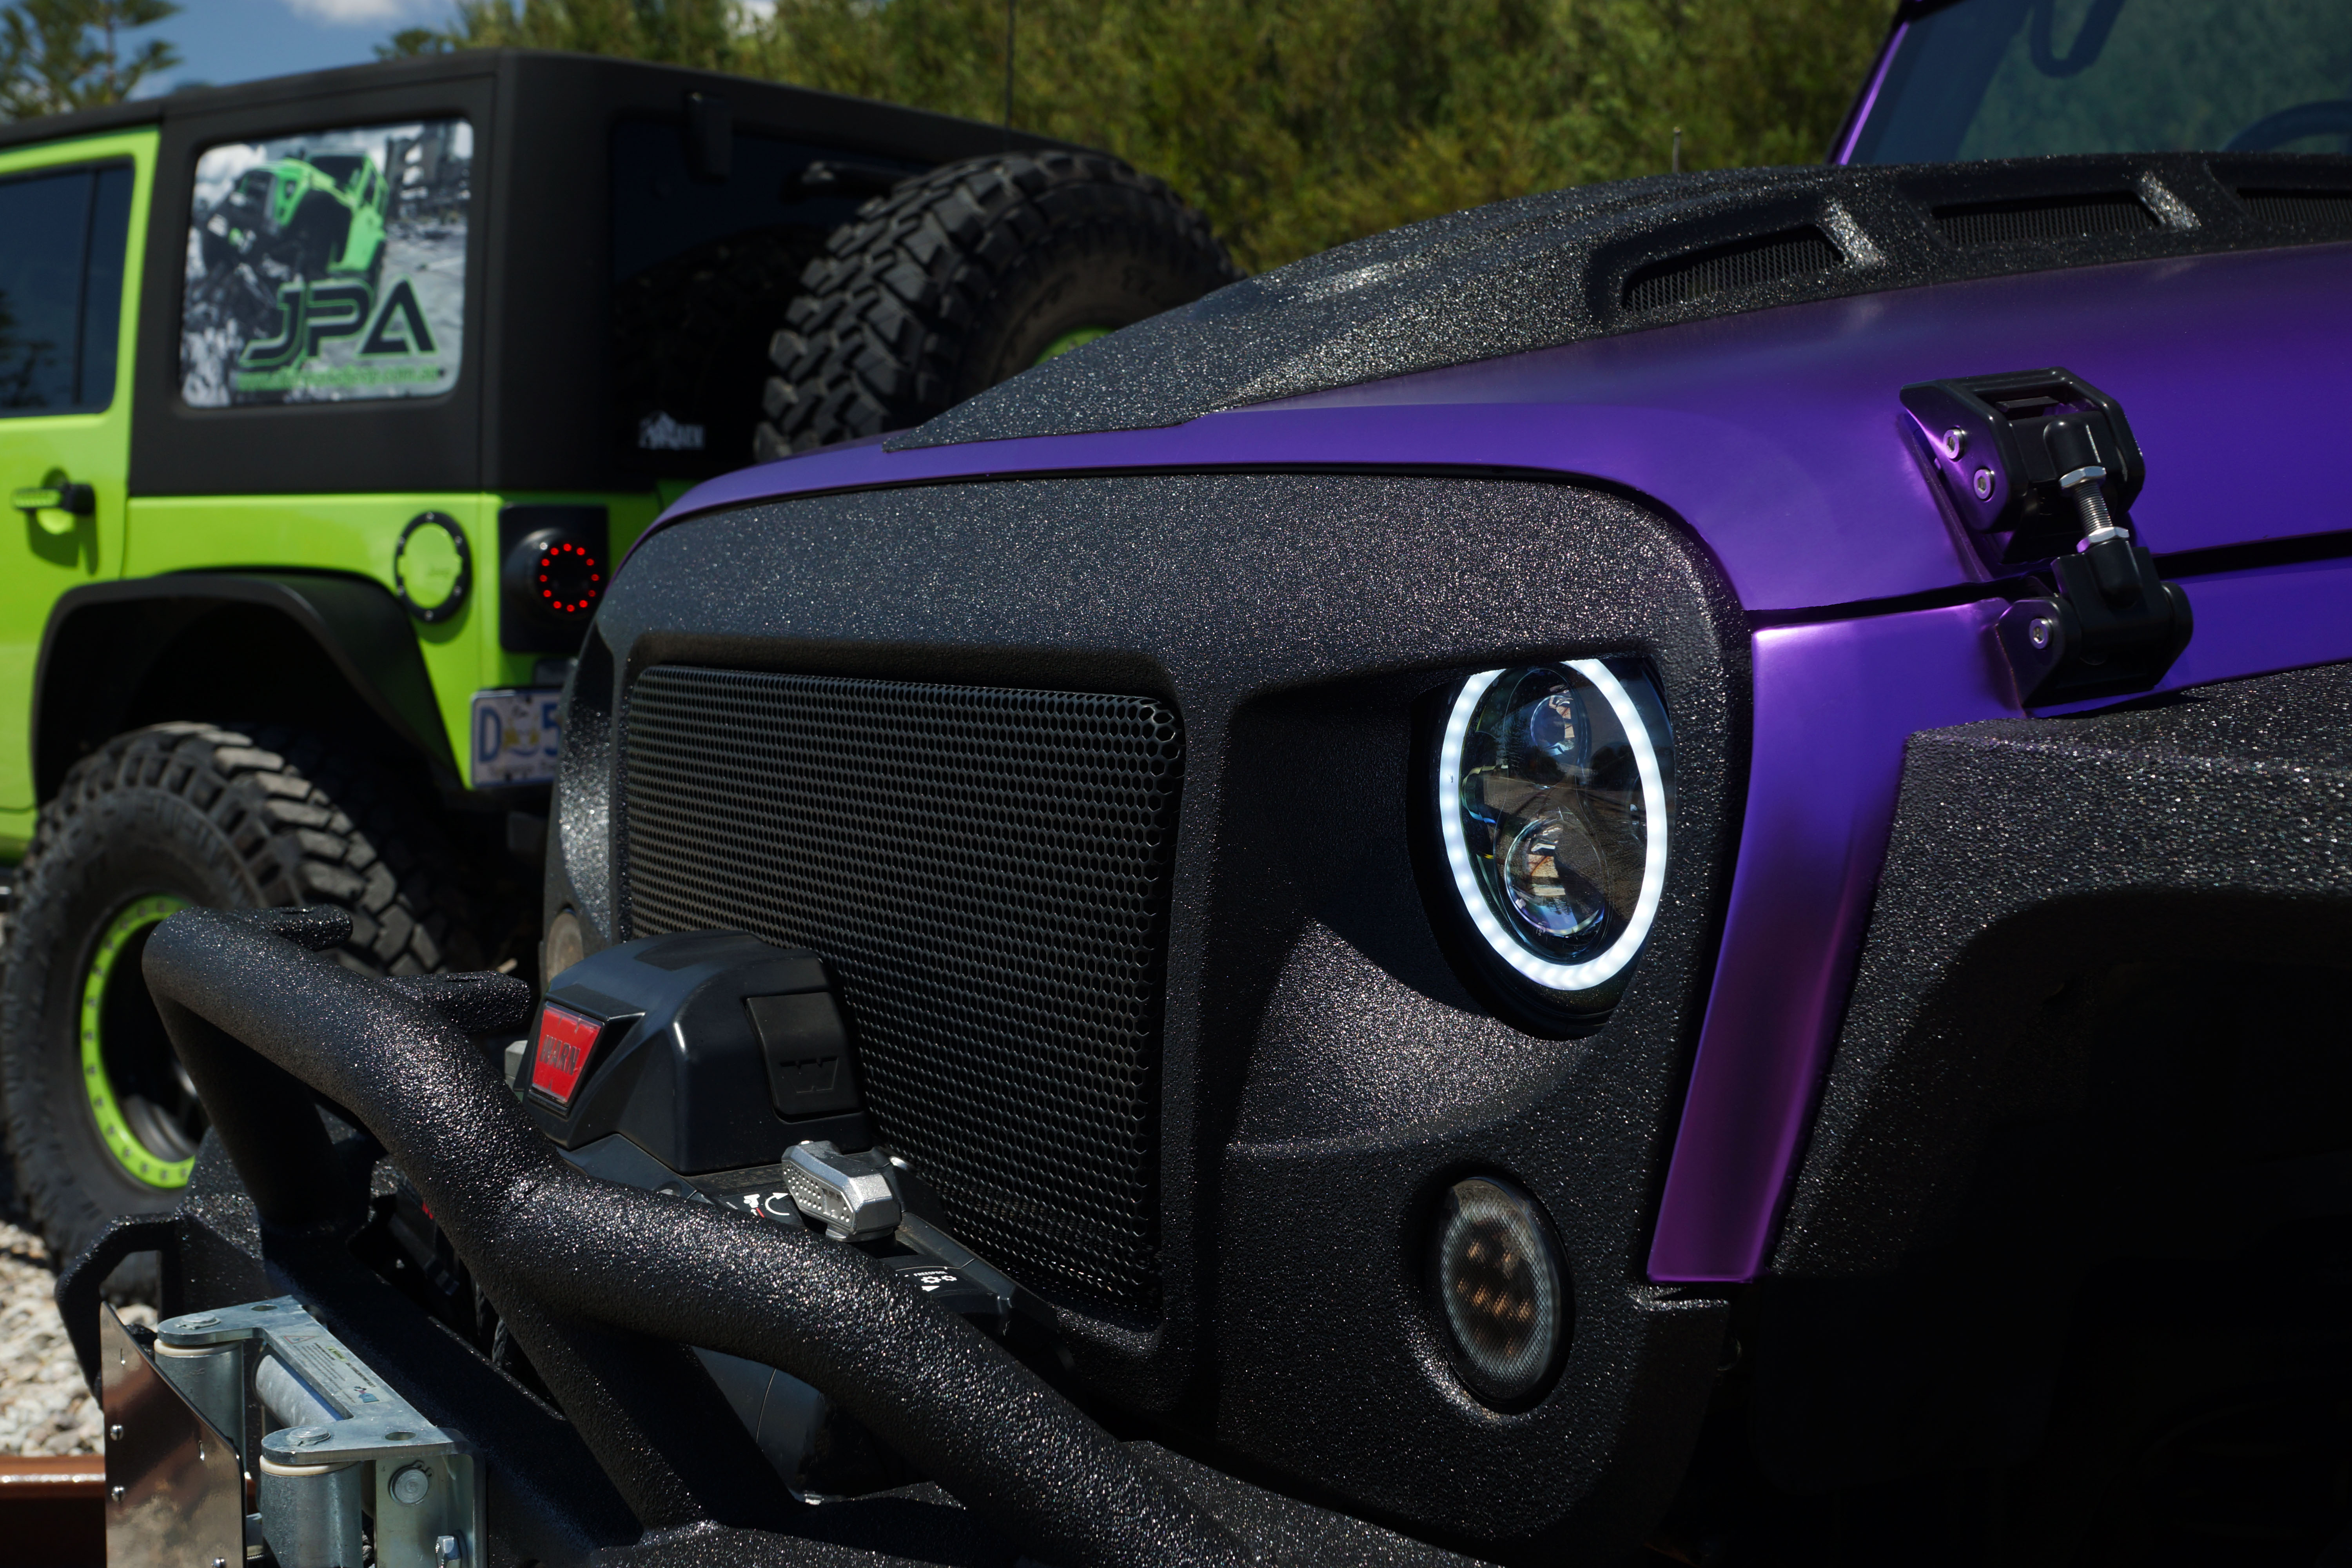 Aftermarket Jeep Parts Australia Wrangler Front Suspension Diagram Jk The New Jpa High Flow Carbon Series Angry Grill For 07 Increases Air Intake